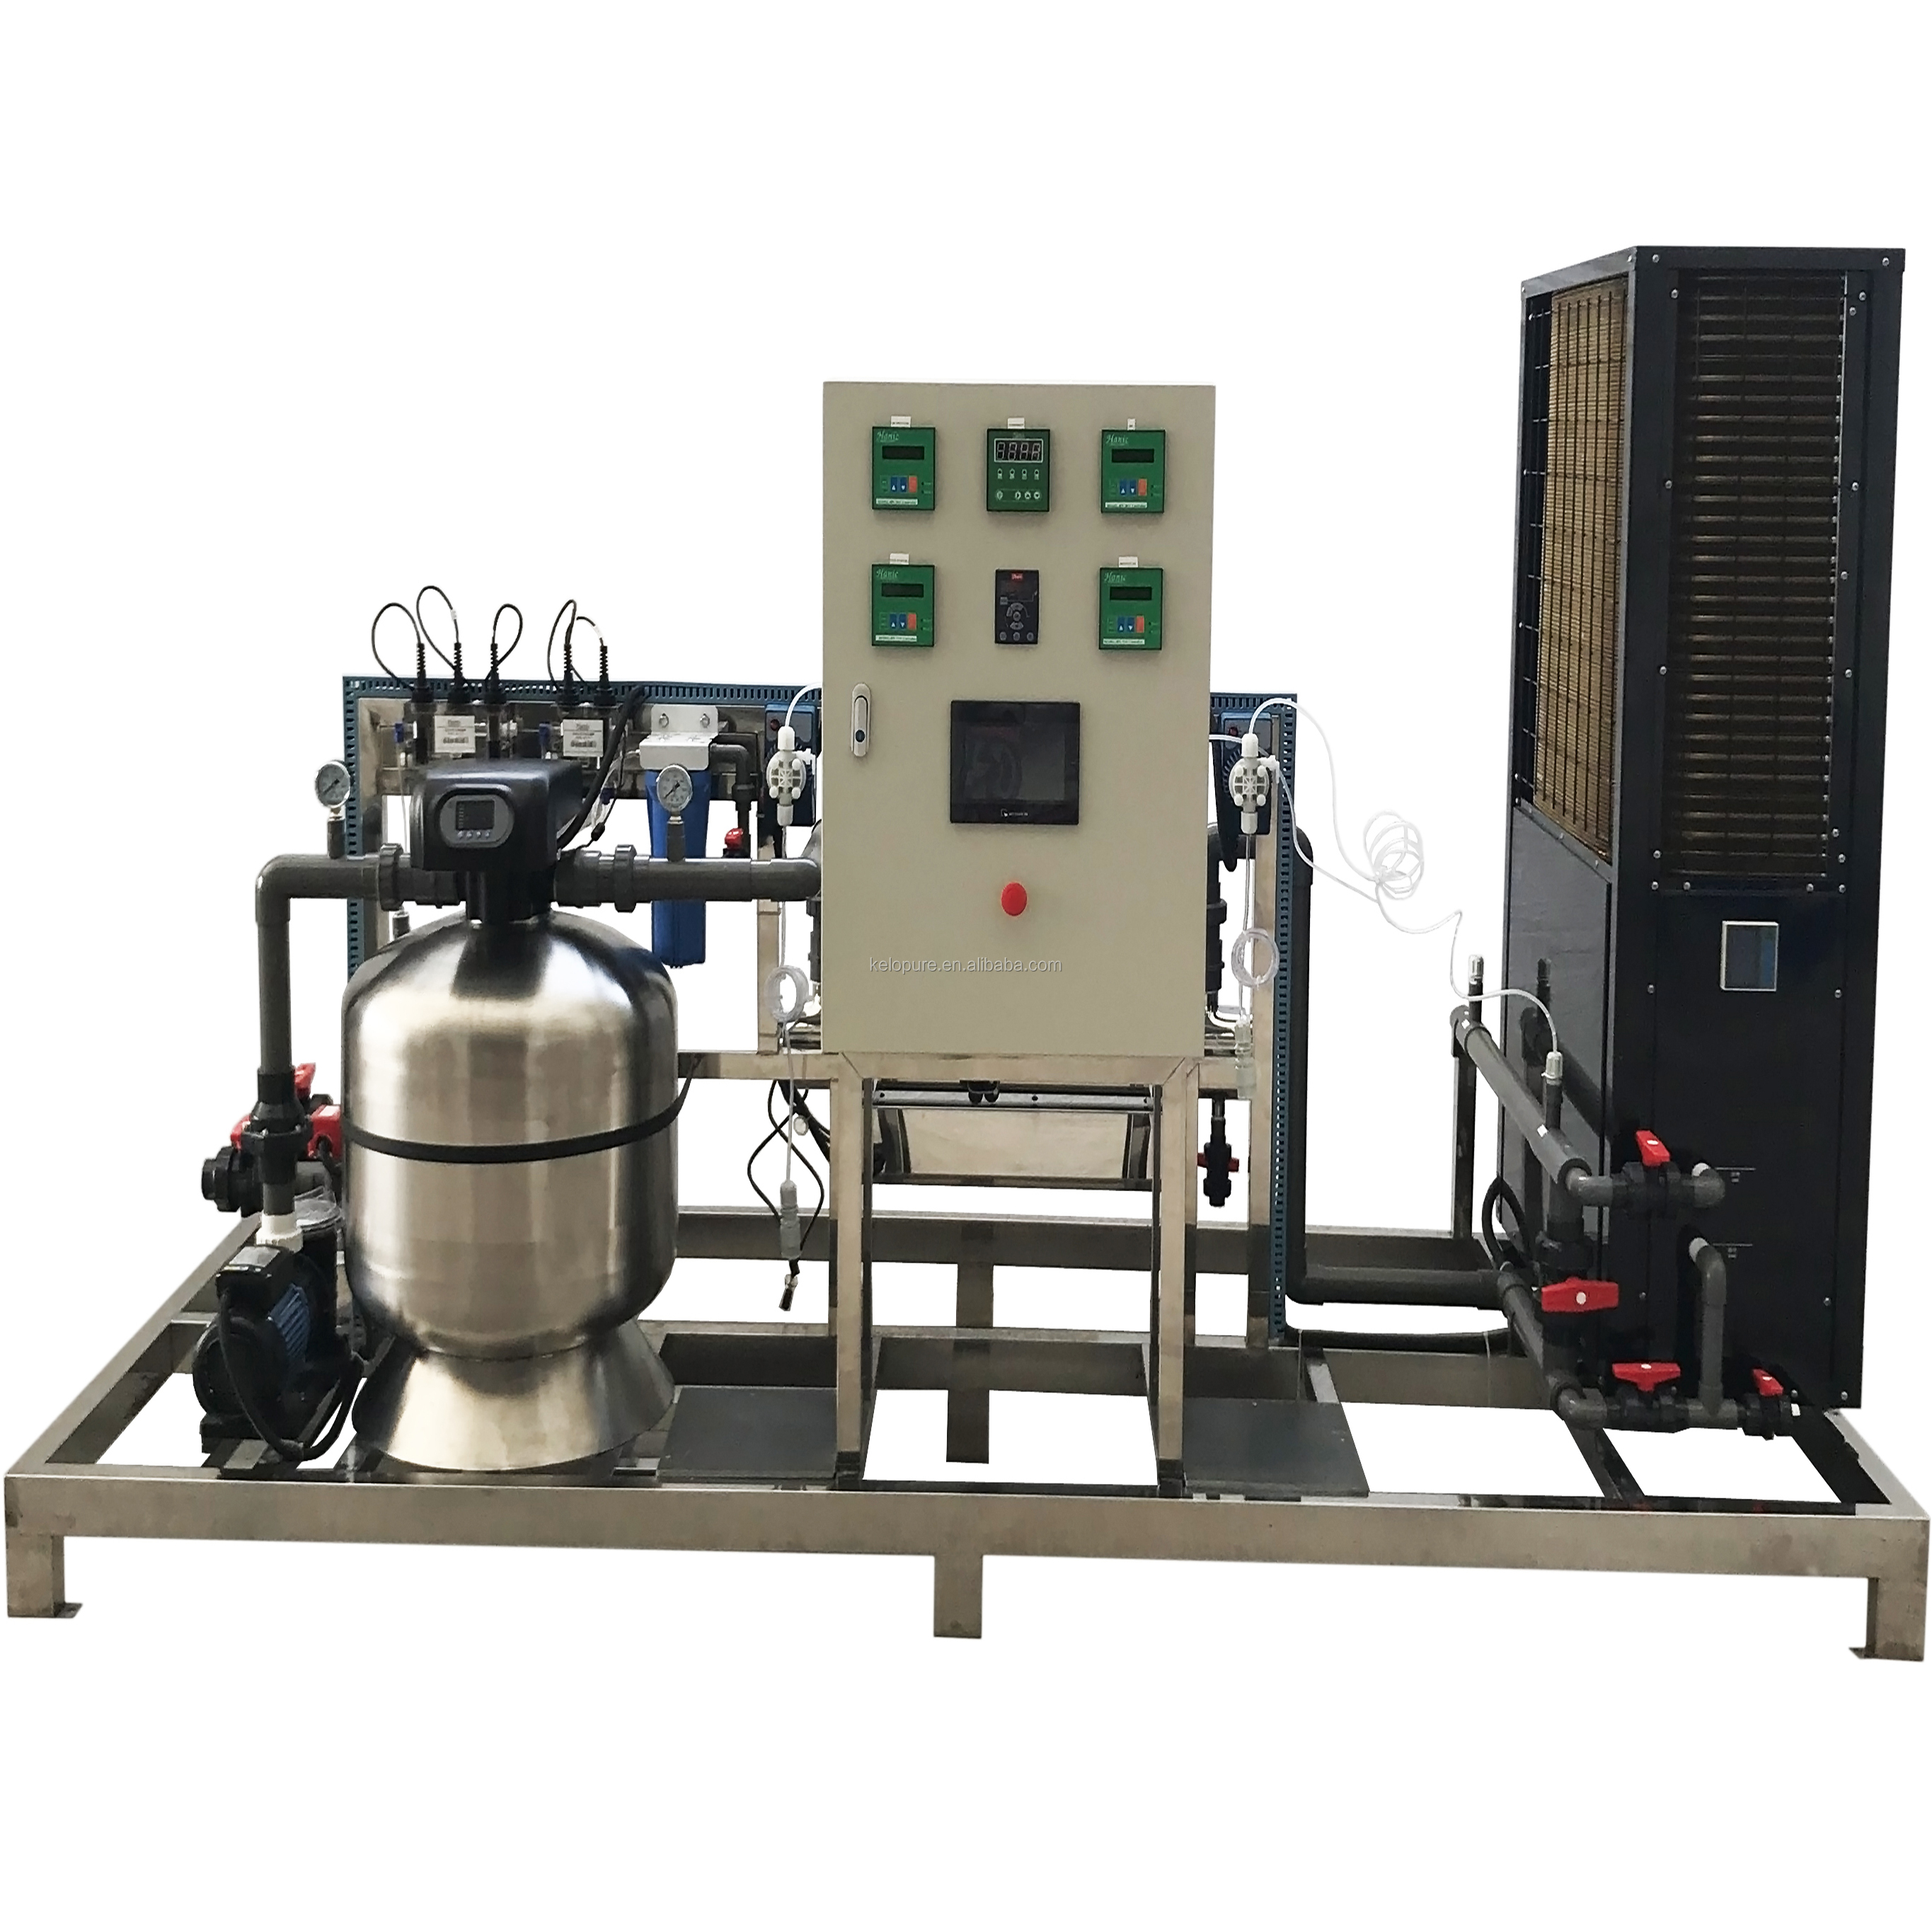 Customized one set swimming pool water filtration skid Emaux sand filter and heat pump equipment